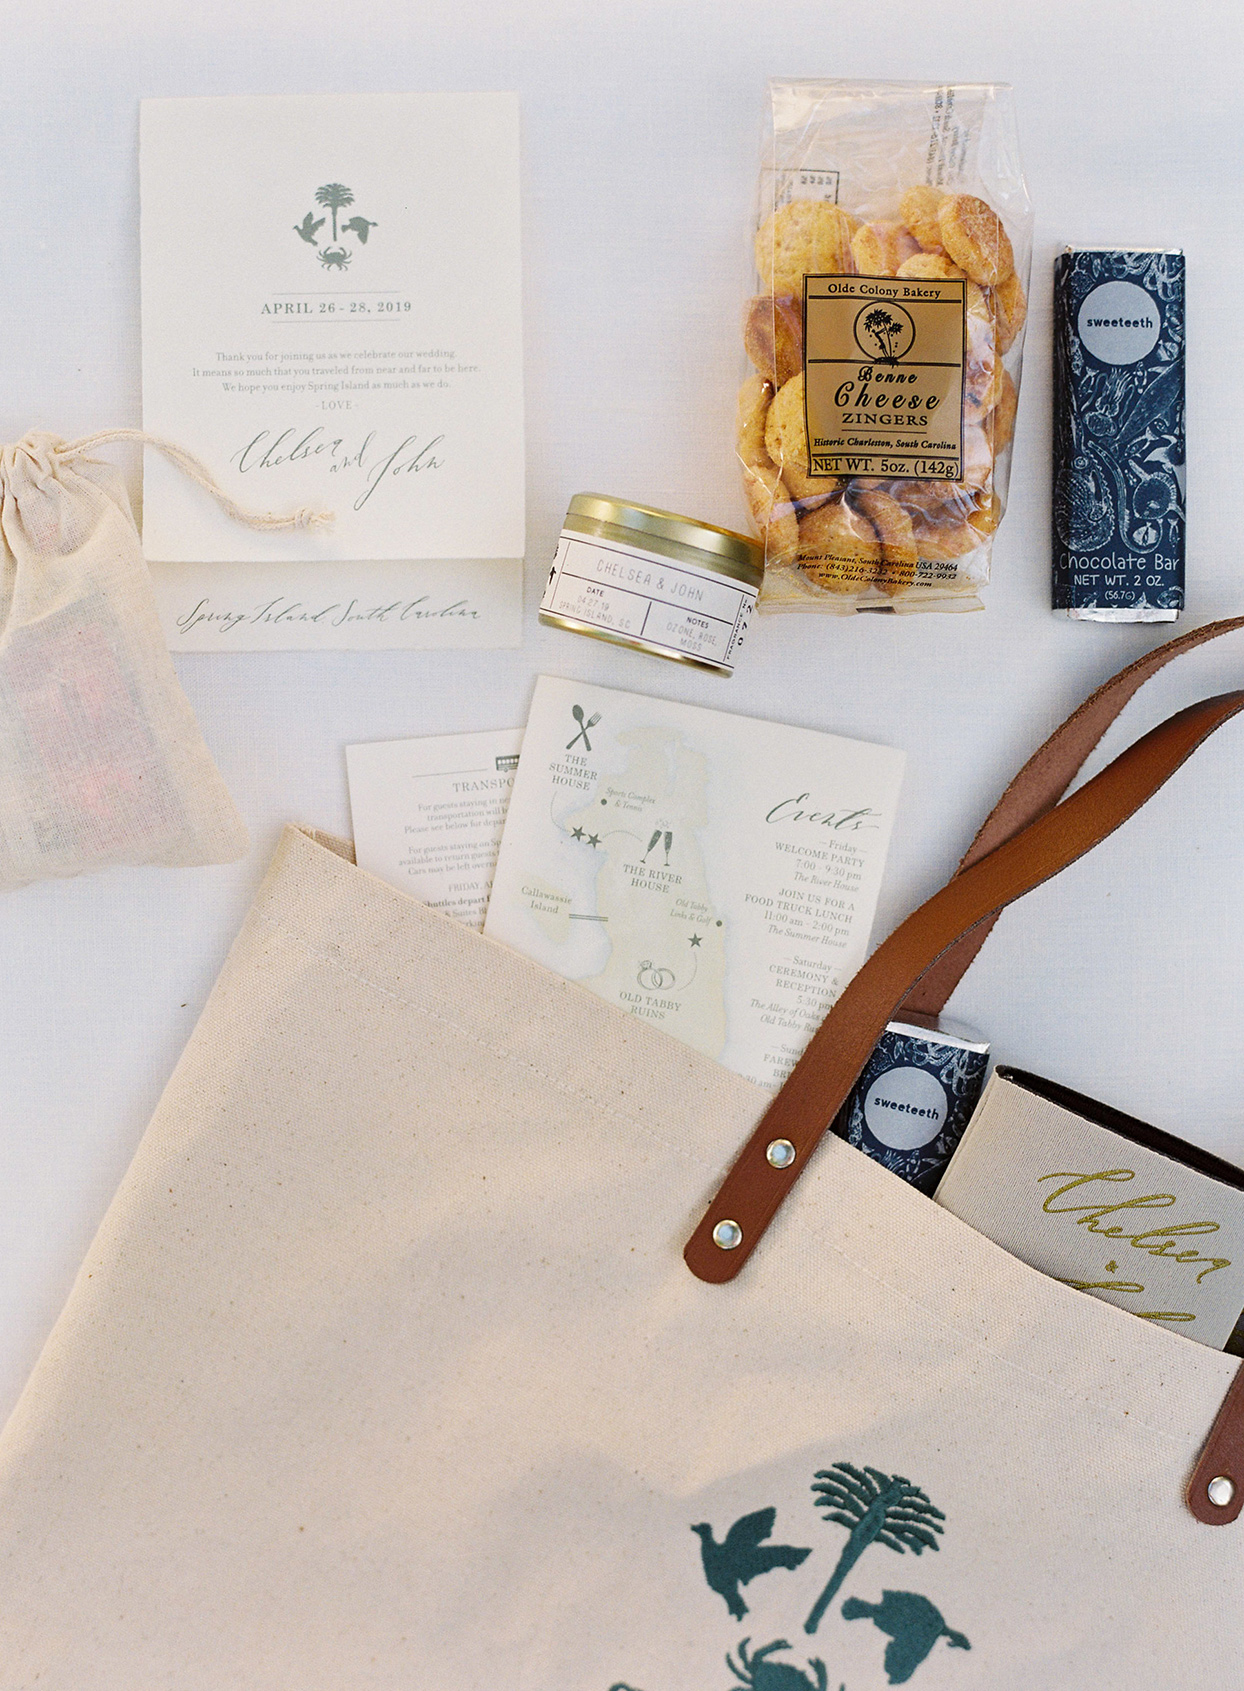 chelsea john wedding bags with snacks, schedules, and a candle